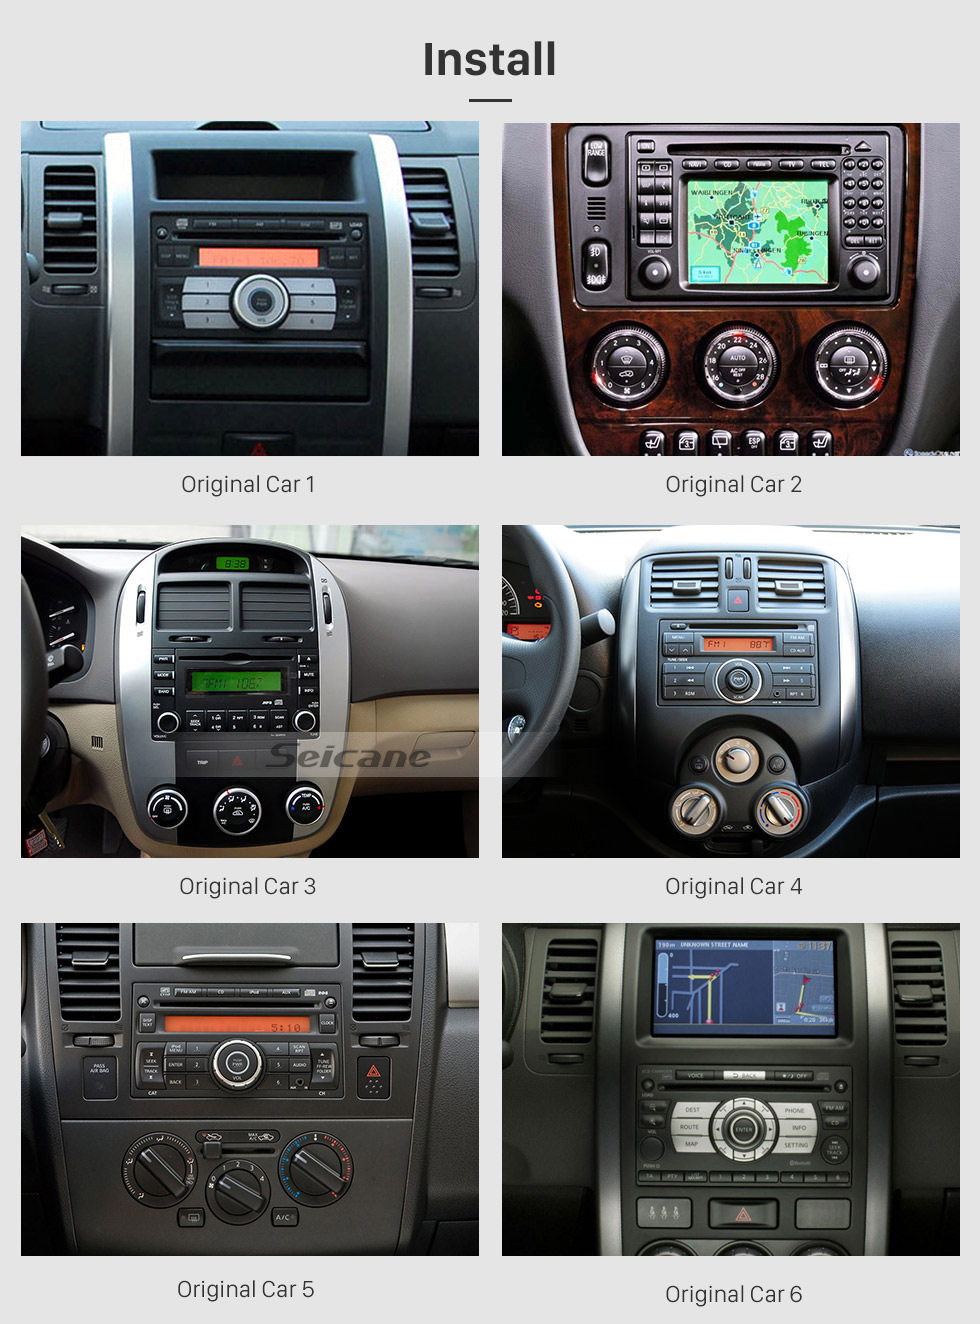 Seicane Android 9.0 2 Din Universal NISSAN TOYOTA Honda Radio GPS Navigation System Car Stereo with Mirror Link WiFi DVD Player Bluetooth 1080P Video USB